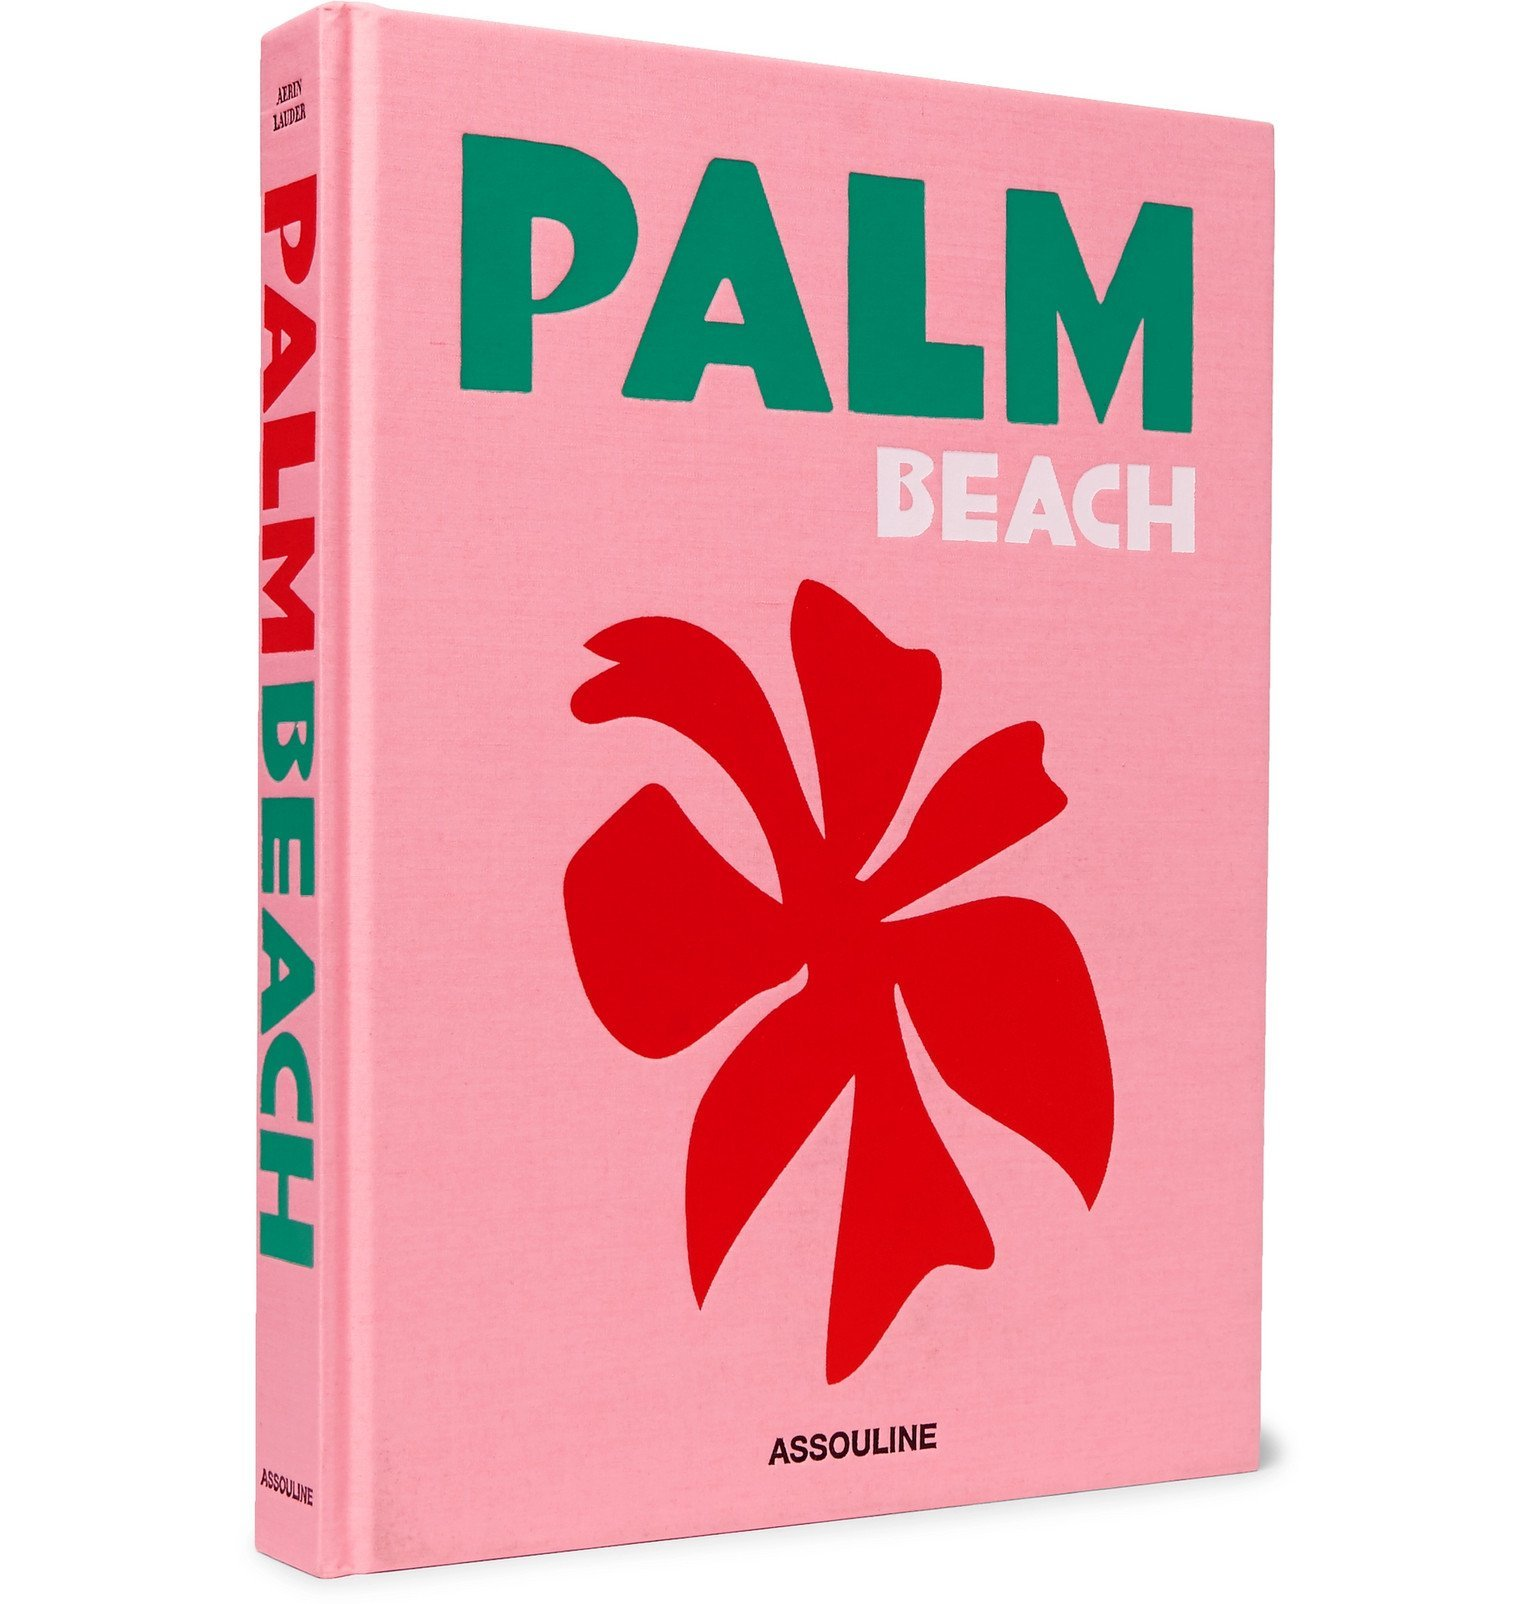 Photo: Assouline - Palm Beach Hardcover Book - Pink